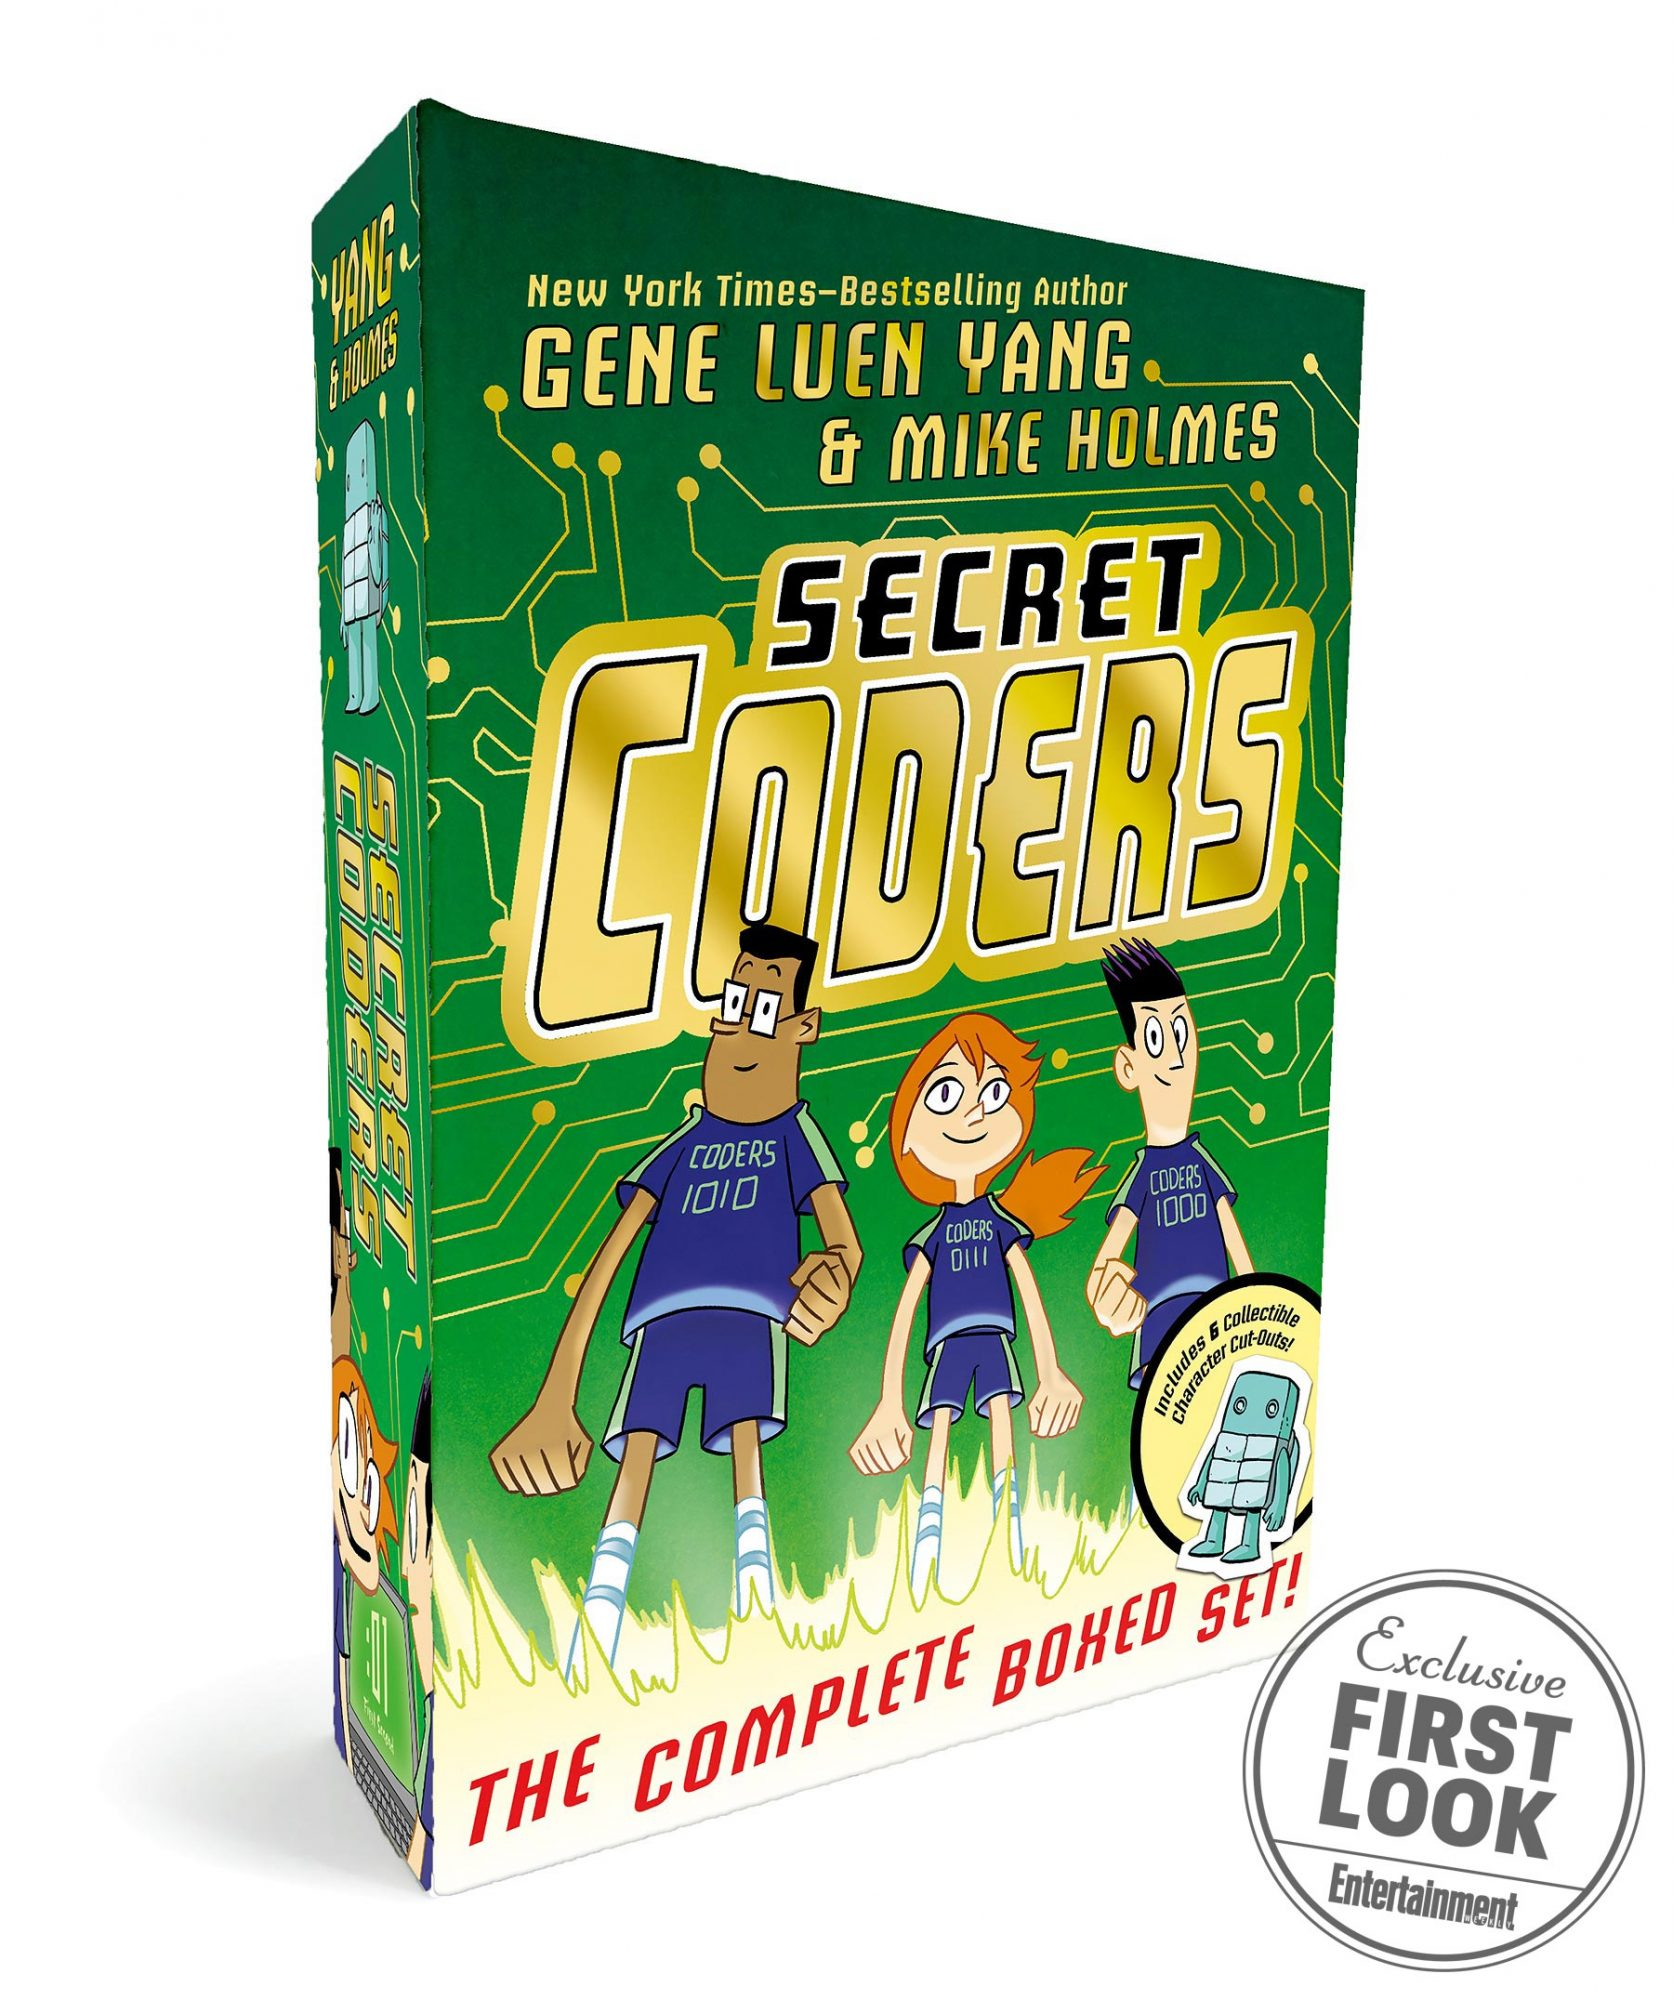 Secret Coders: The Complete Boxed Set by Gene Luen Yang and Mike Holmes (Feb. 26)